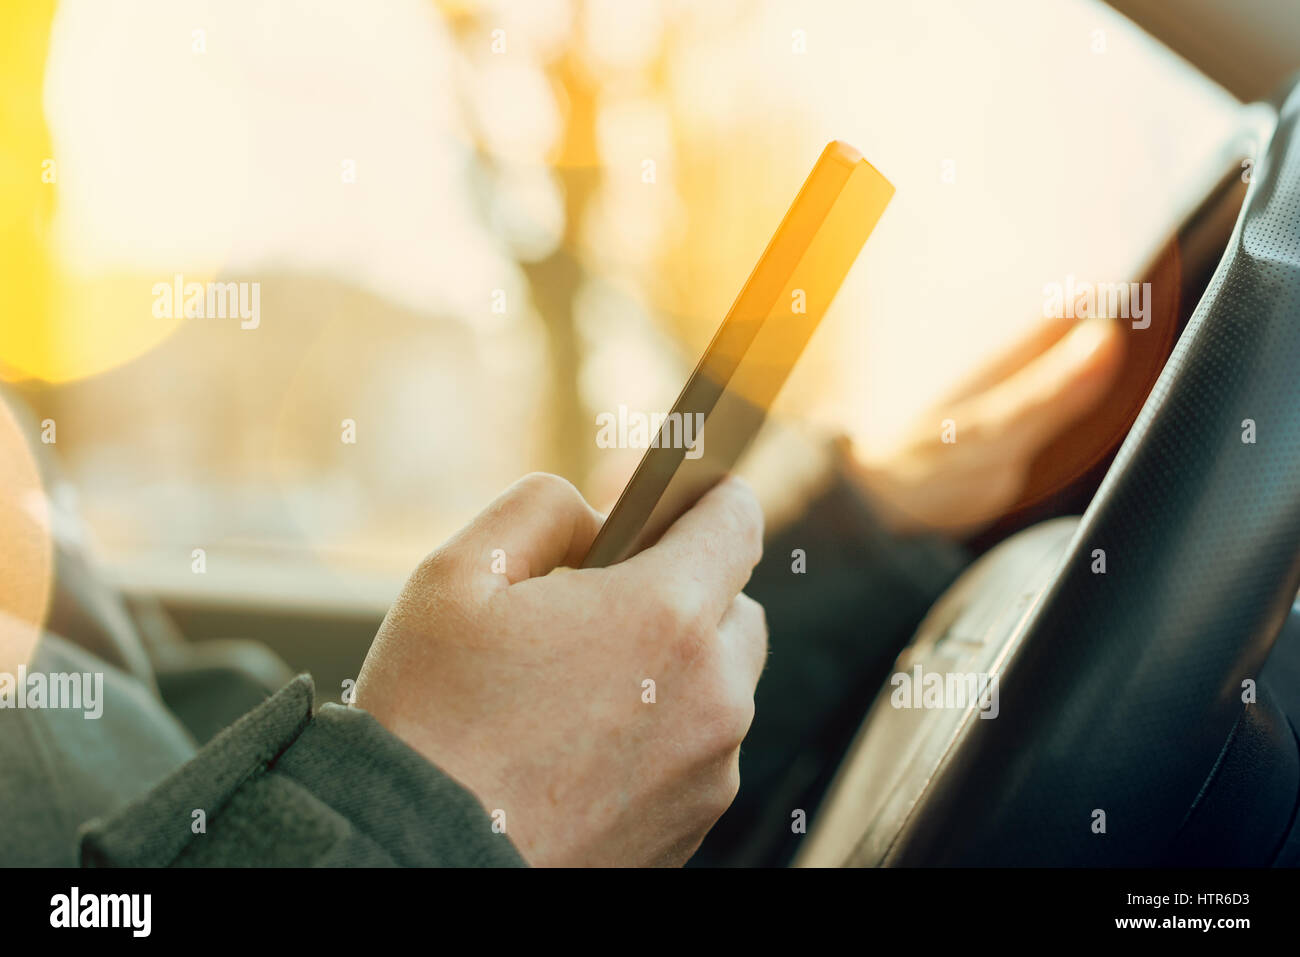 Reckless traffic behavior, driving and using mobile phone to send SMS message - Stock Image